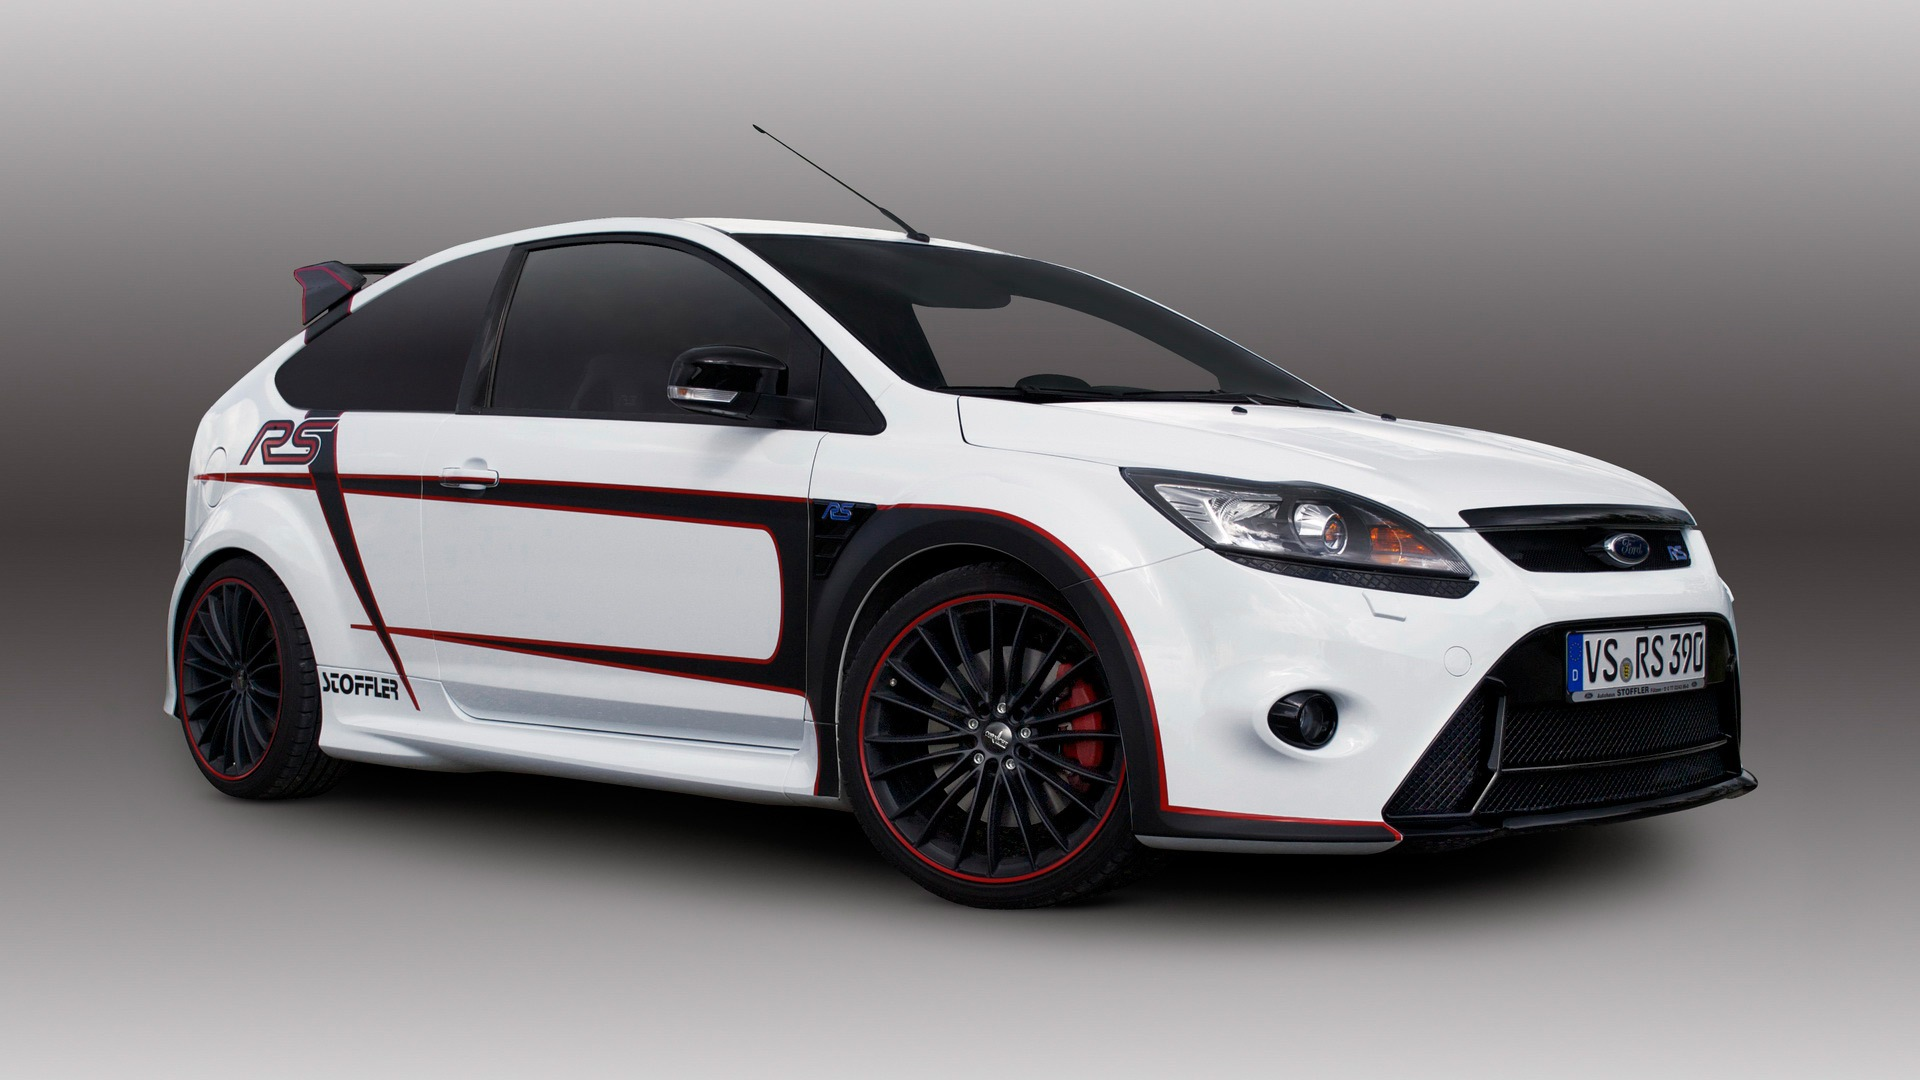 Ford Focus Rs Stoffler wallpaper   220002 1920x1080